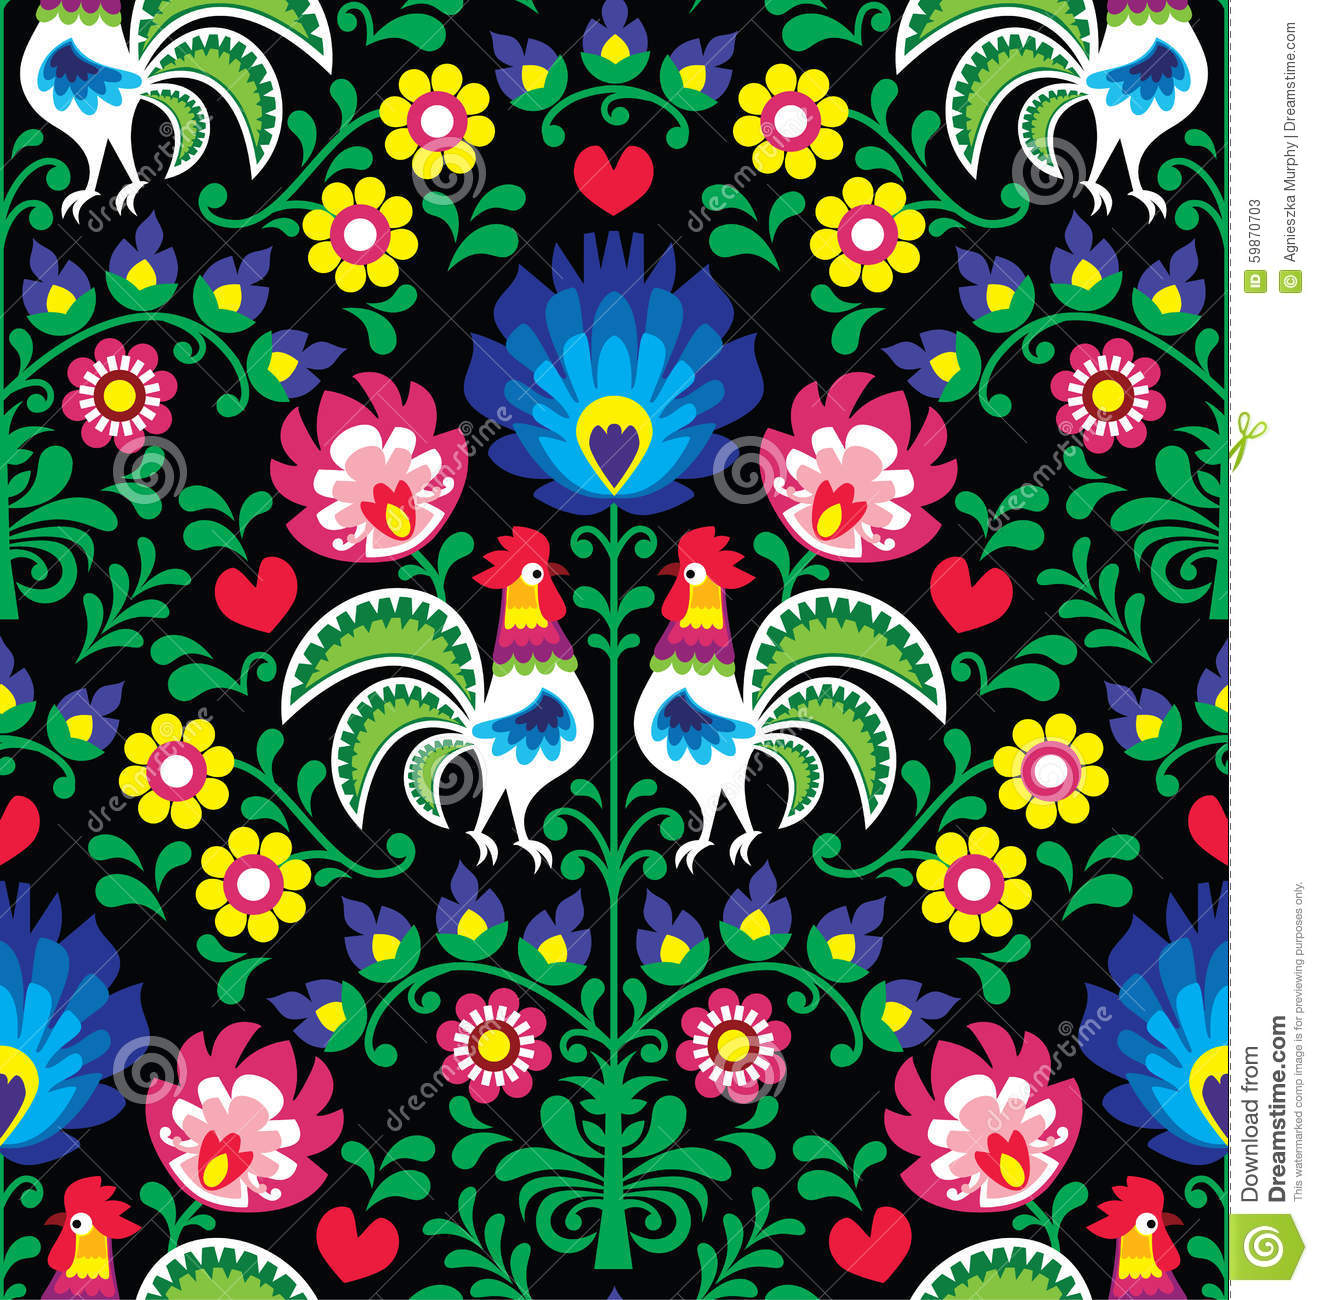 Colorful Animal Print Wallpaper Seamless Polish Folk Art Pattern With Roosters Stock